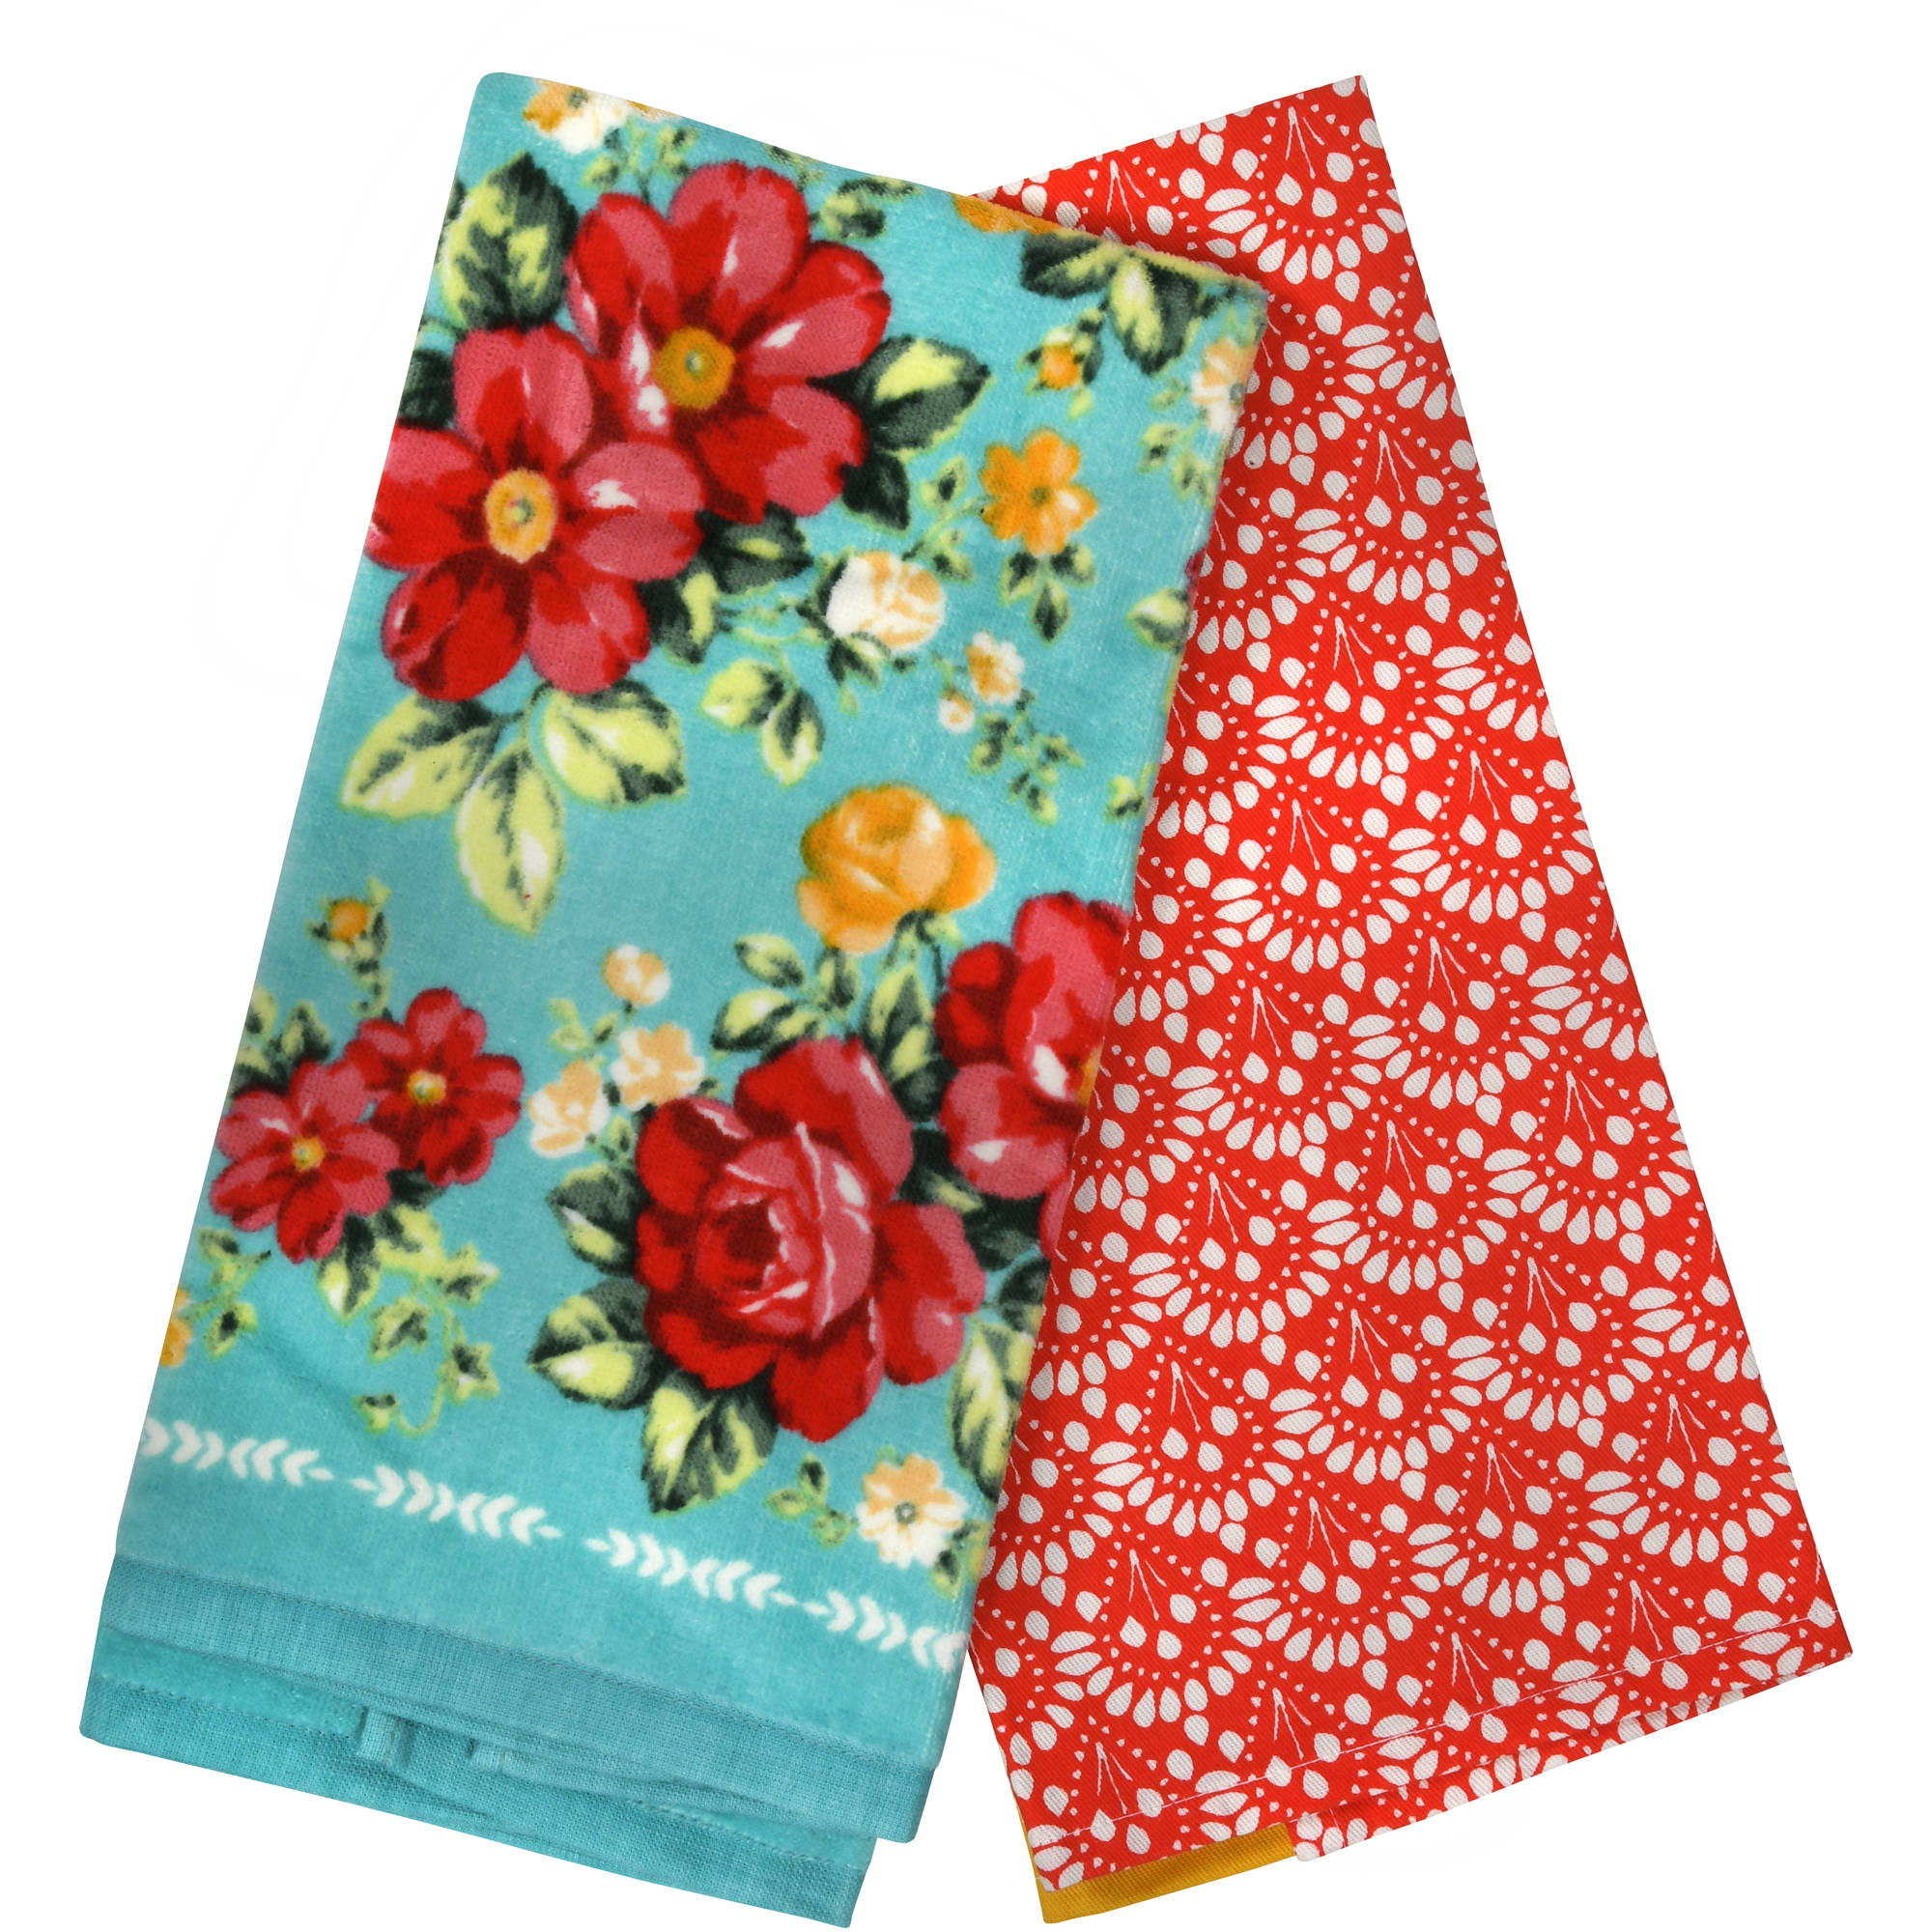 The Pioneer Woman, Vintage Floral 2pk Kitchen Towel set